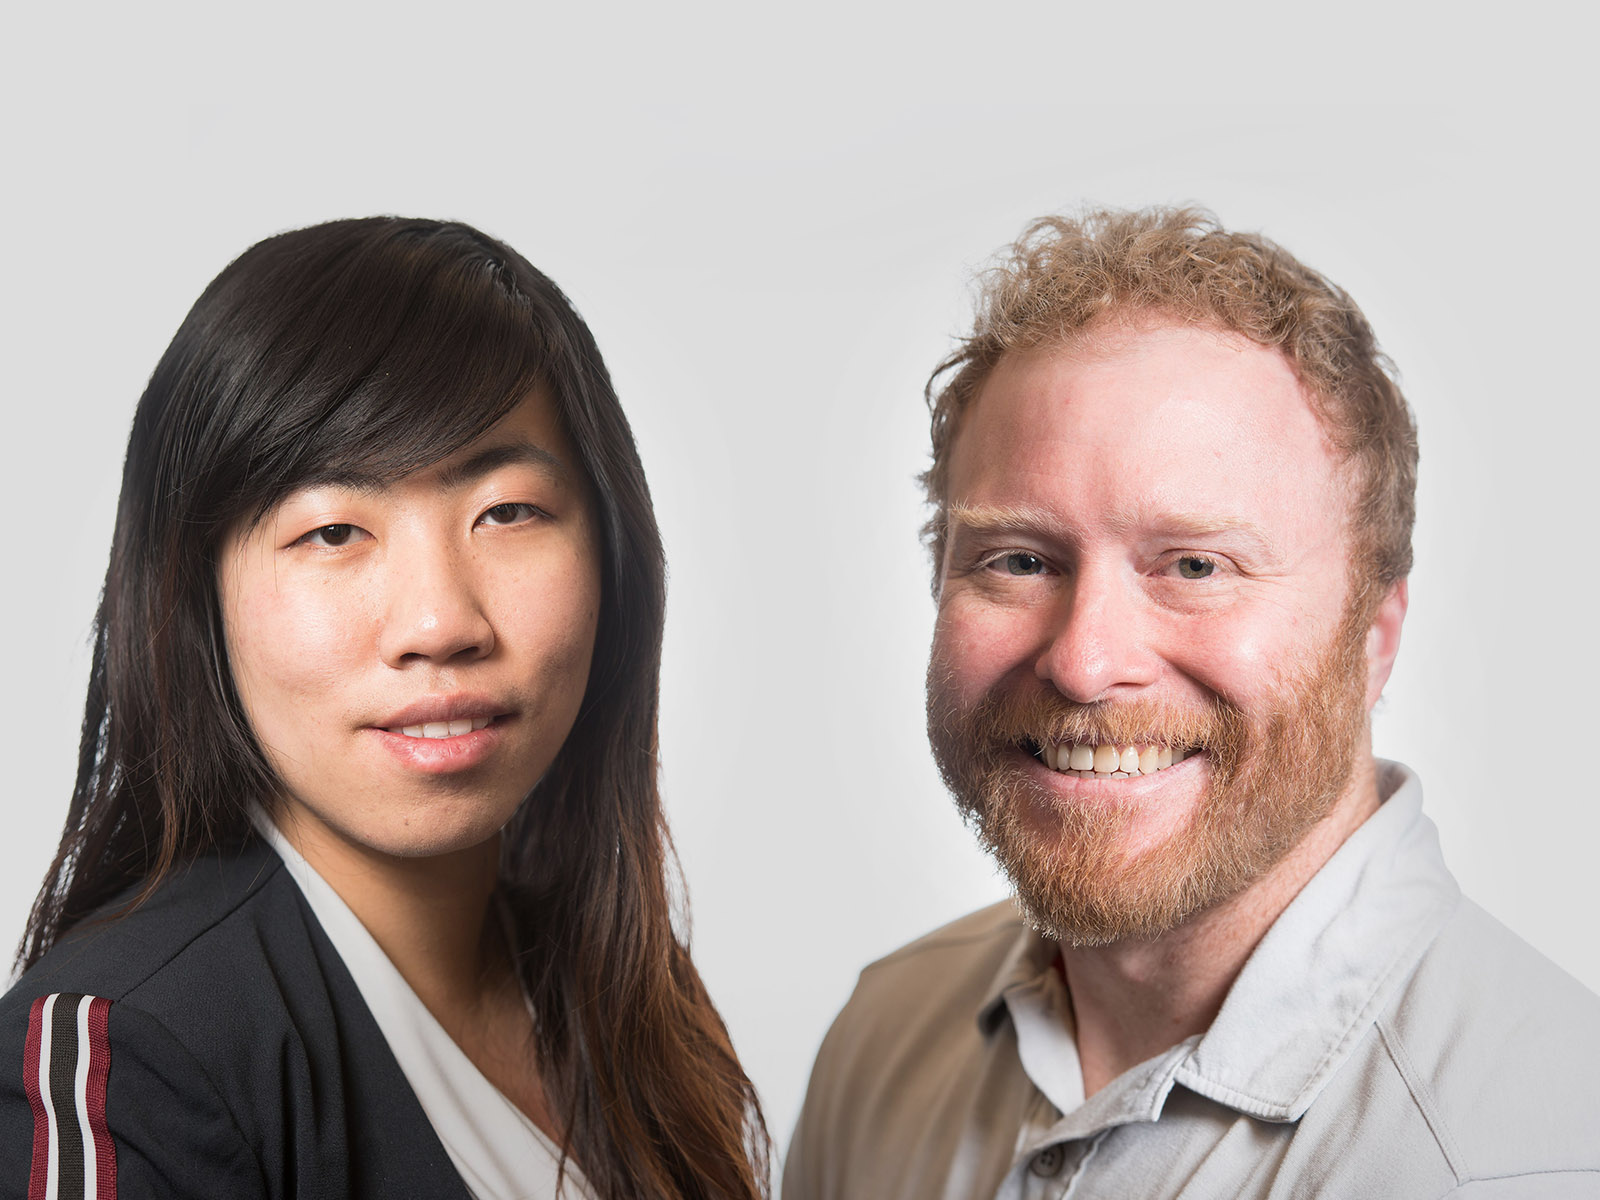 Chemical engineer Yuan Jiang, left, and green chemist David Heldebrant, right, are coauthors on a new study that describes properties of the carbon capture solvent, known as EEMPA, and its potential to remove CO2 from power plant emissions before the acidic gas can reach the atmosphere.